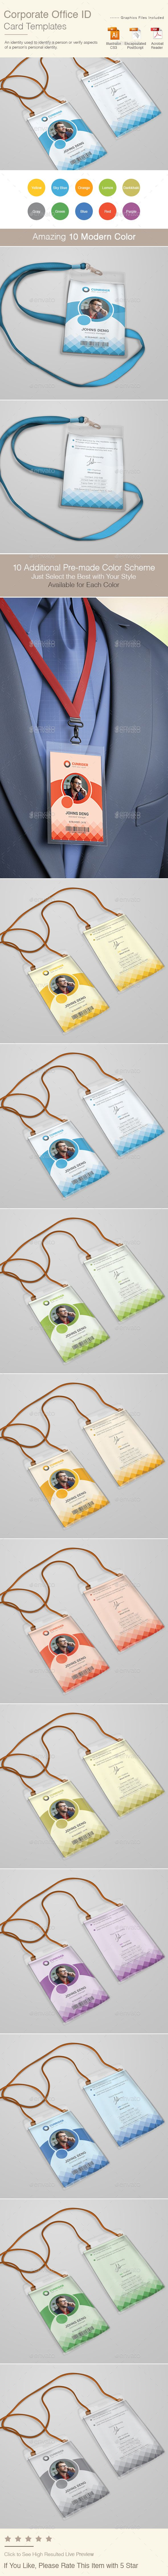 Corporate #IDCard - Miscellaneous Print Templates.Download here ...